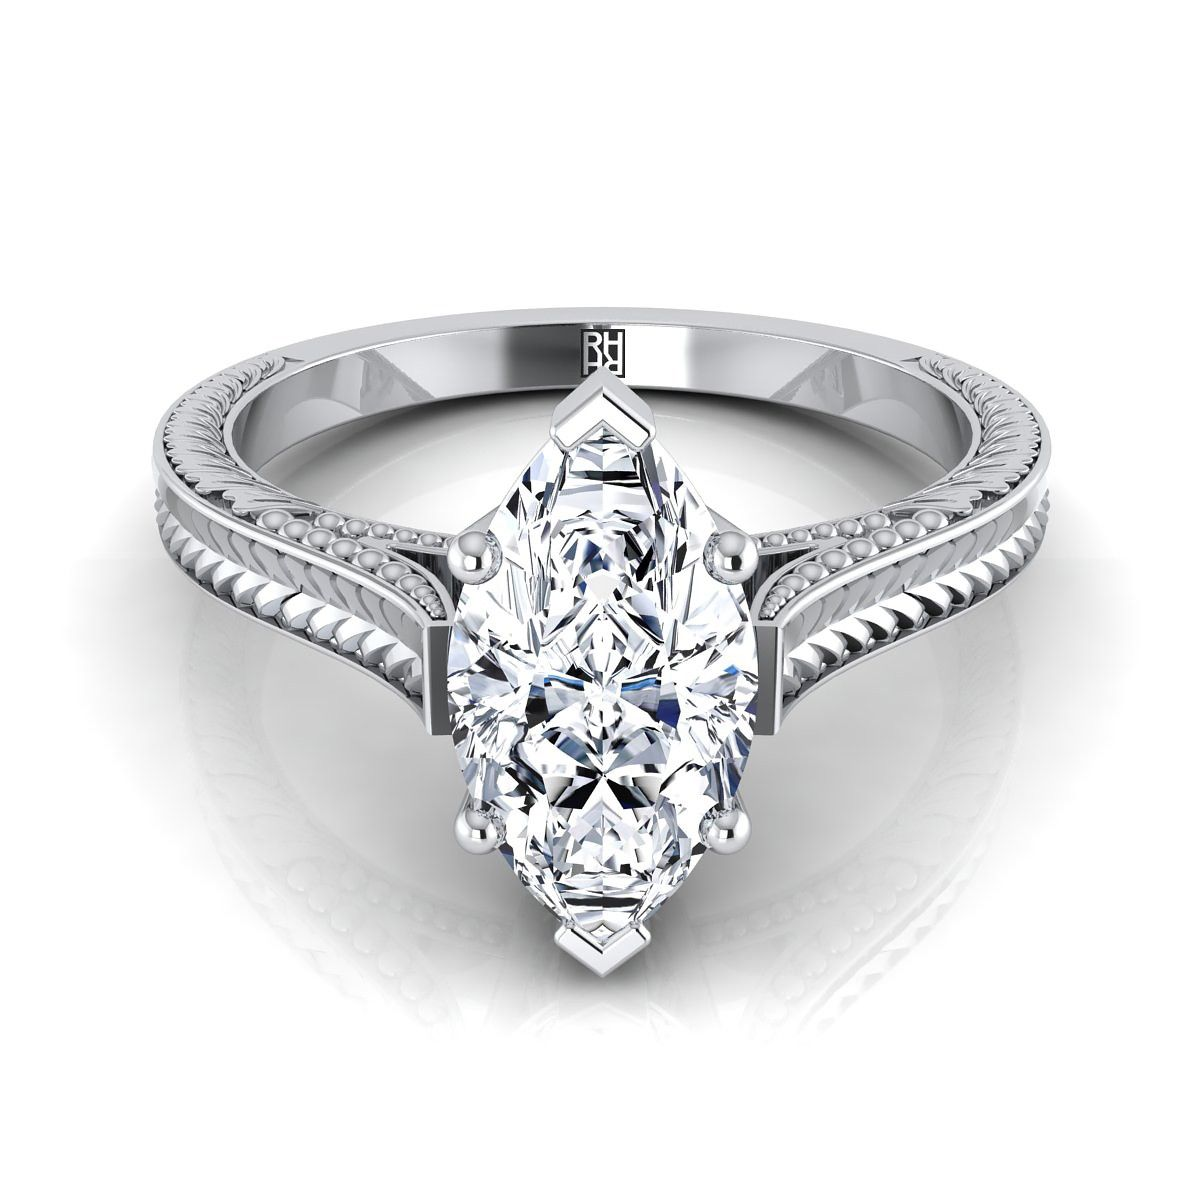 Marquise Antique Inspired Engraved Diamond Engagement Ring